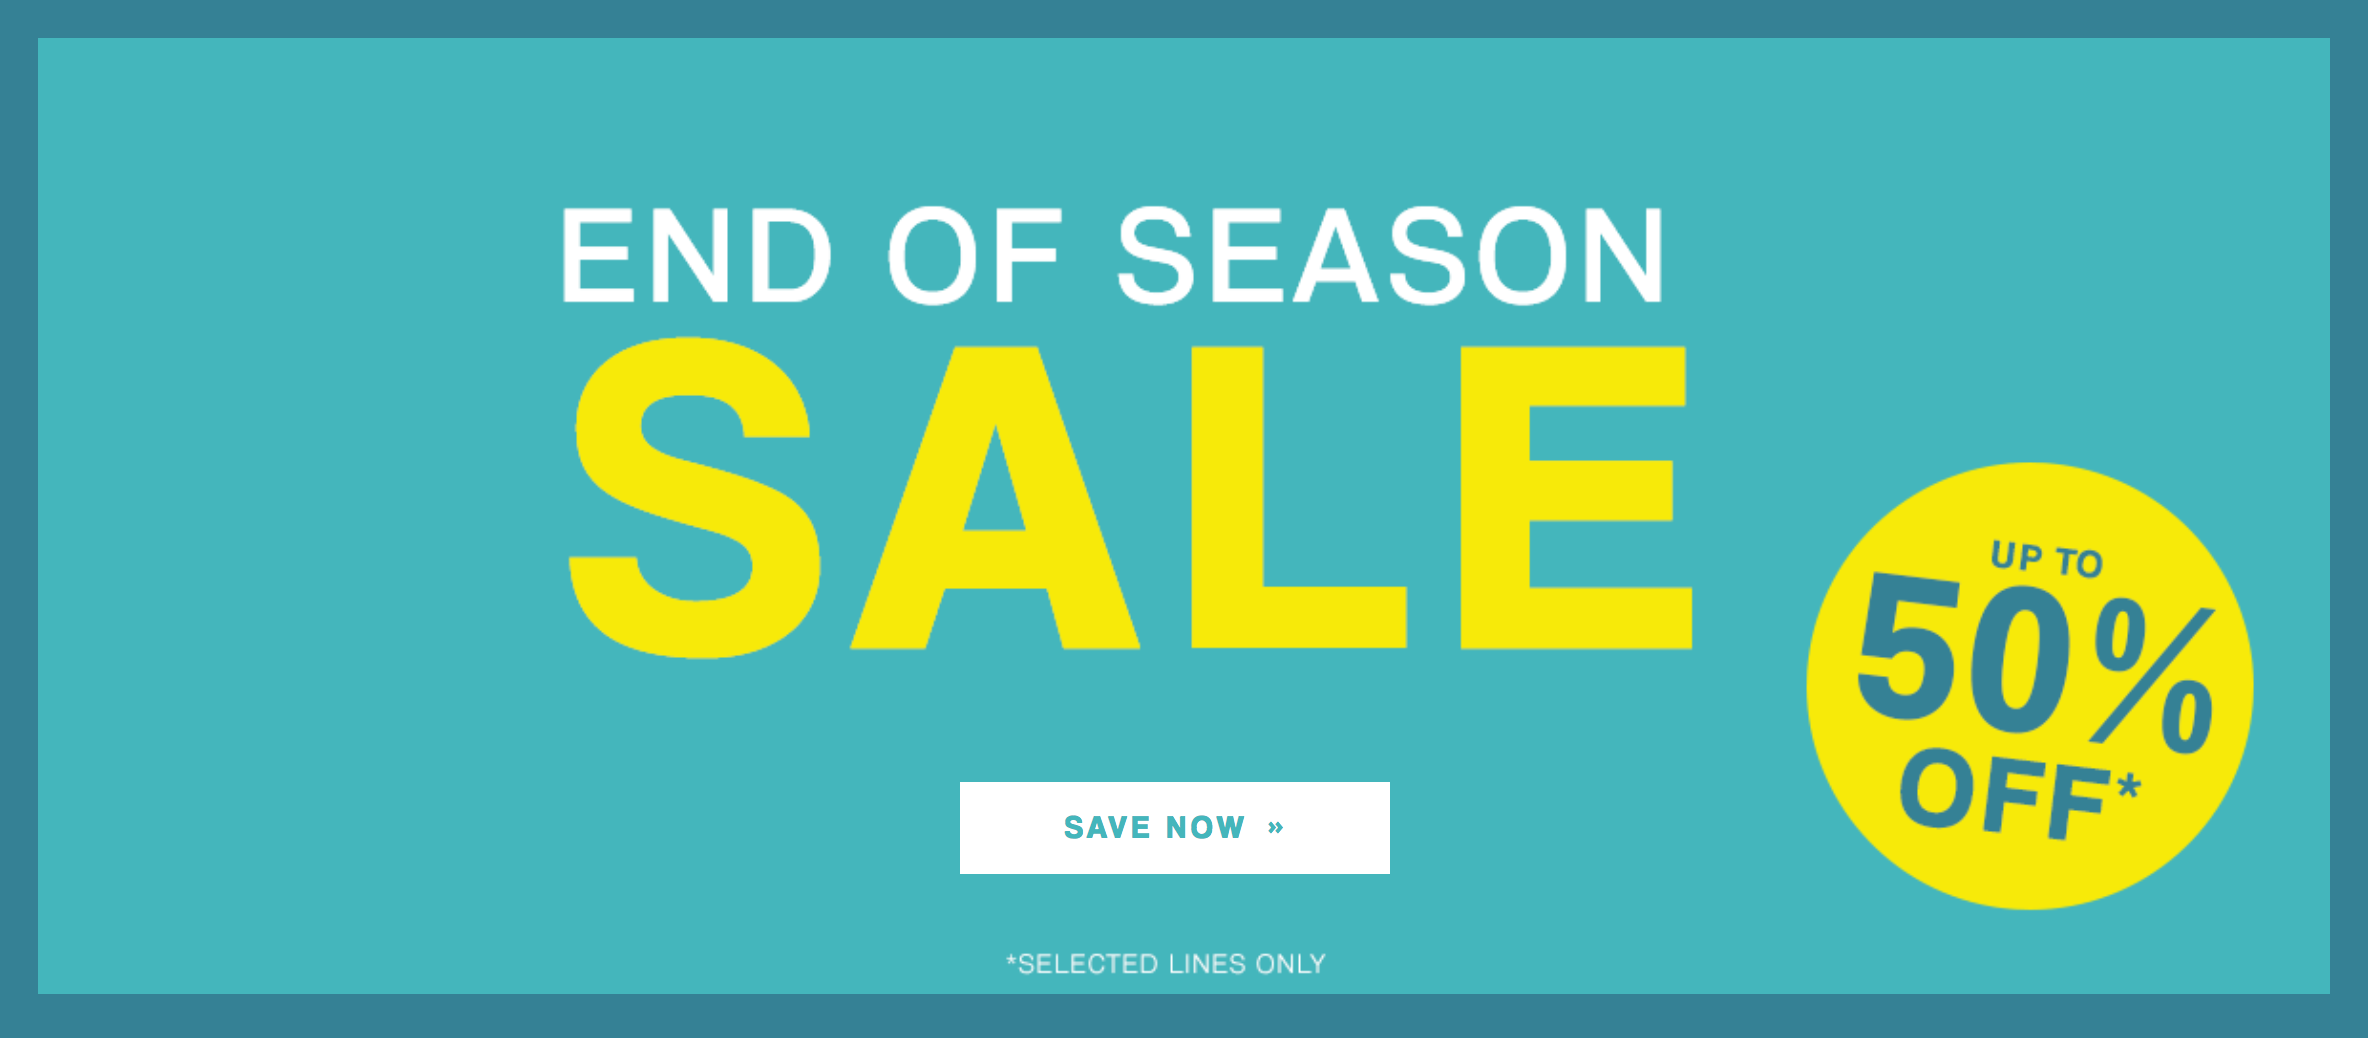 Premier Man: End of Season Sale up to 50% off womens, mens and kids clothing and footwear